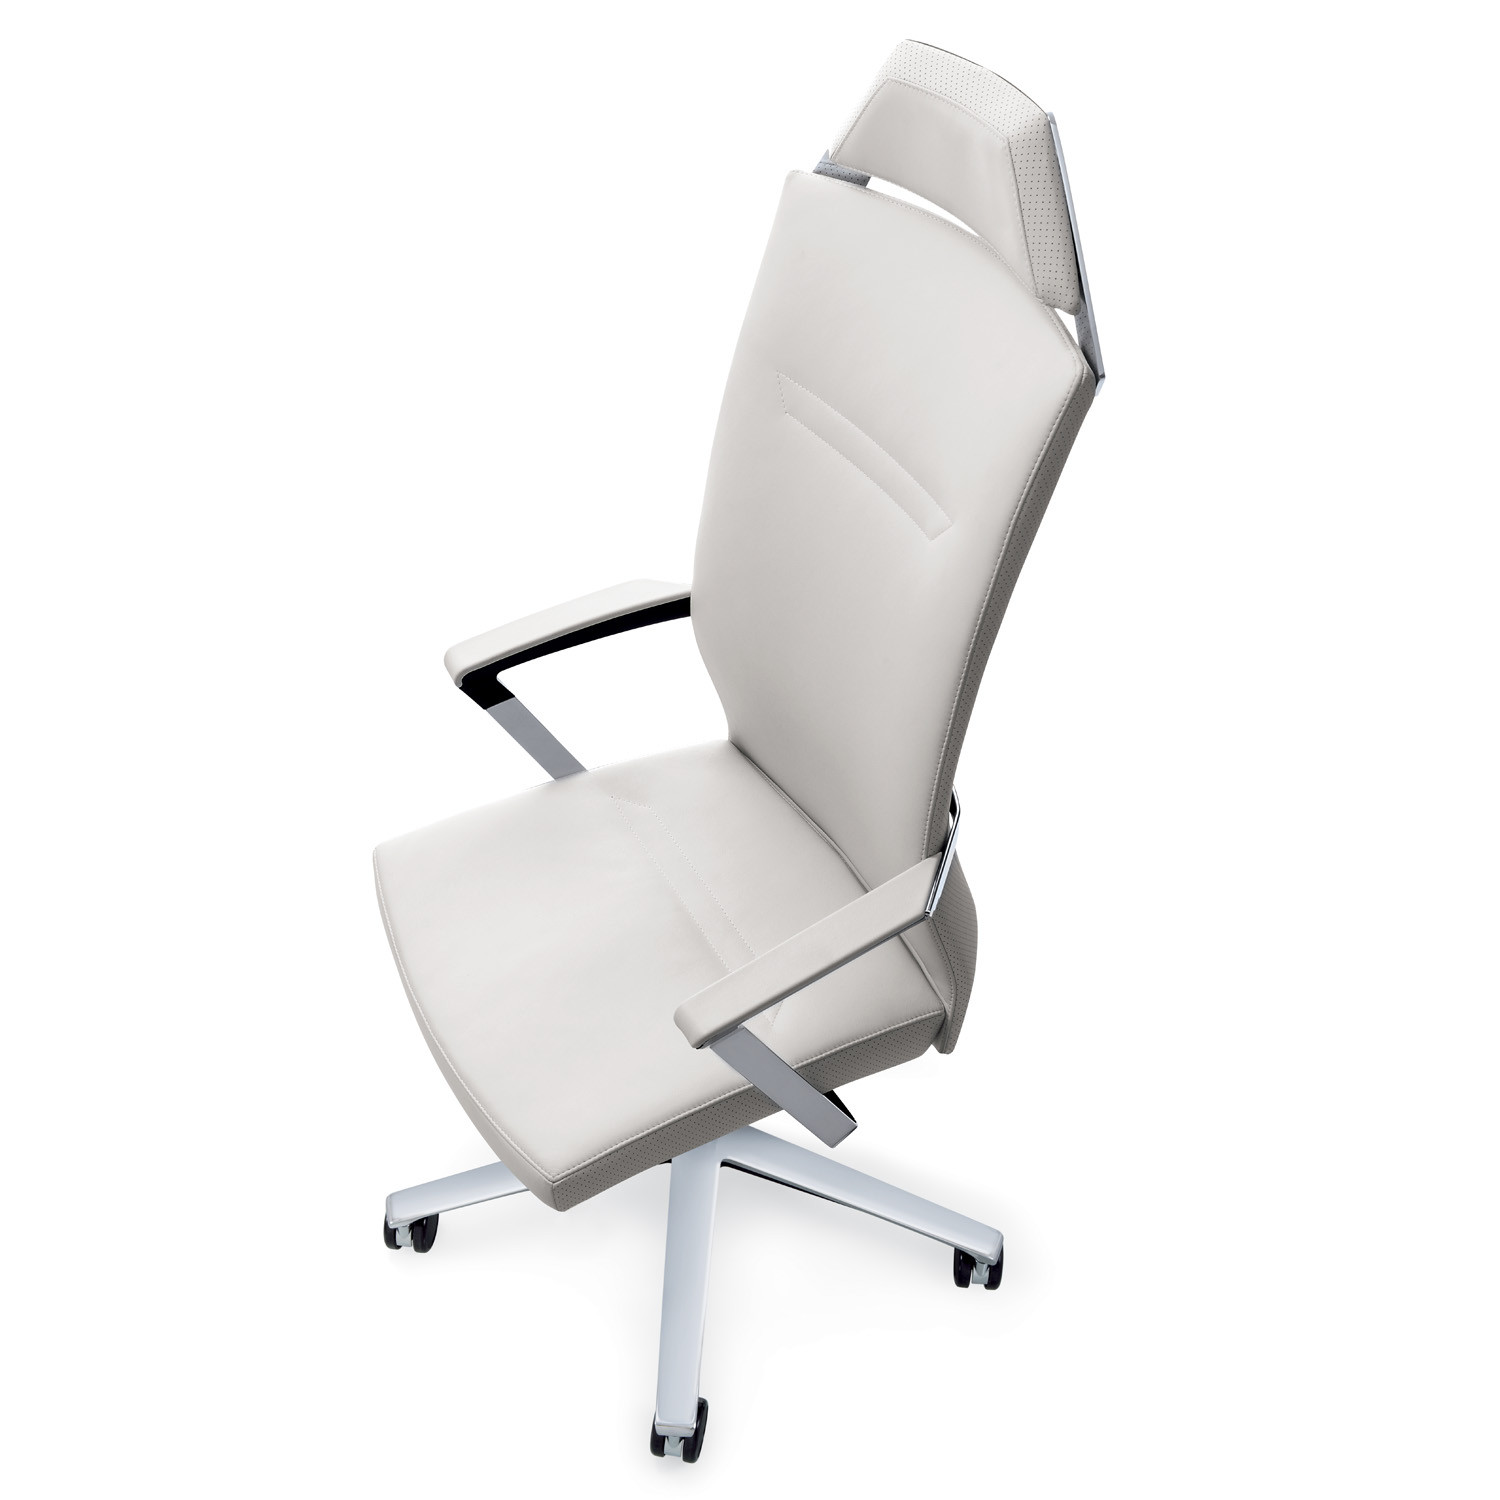 Zuco DucaRE Executive Office Chair